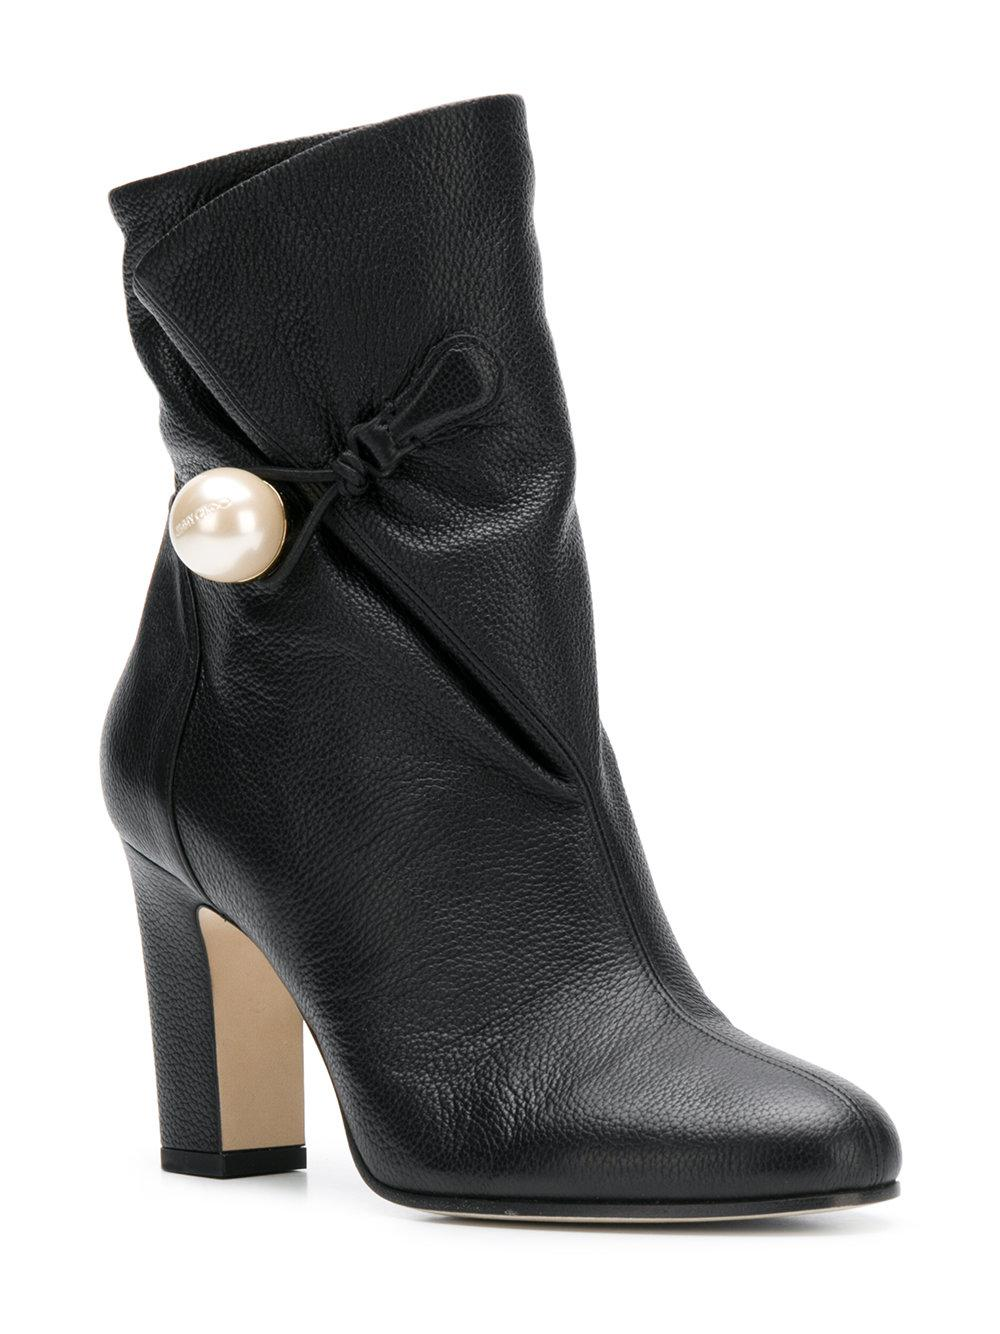 Jimmy Choo Leather Bethanie 85 Ankle Boots in Black